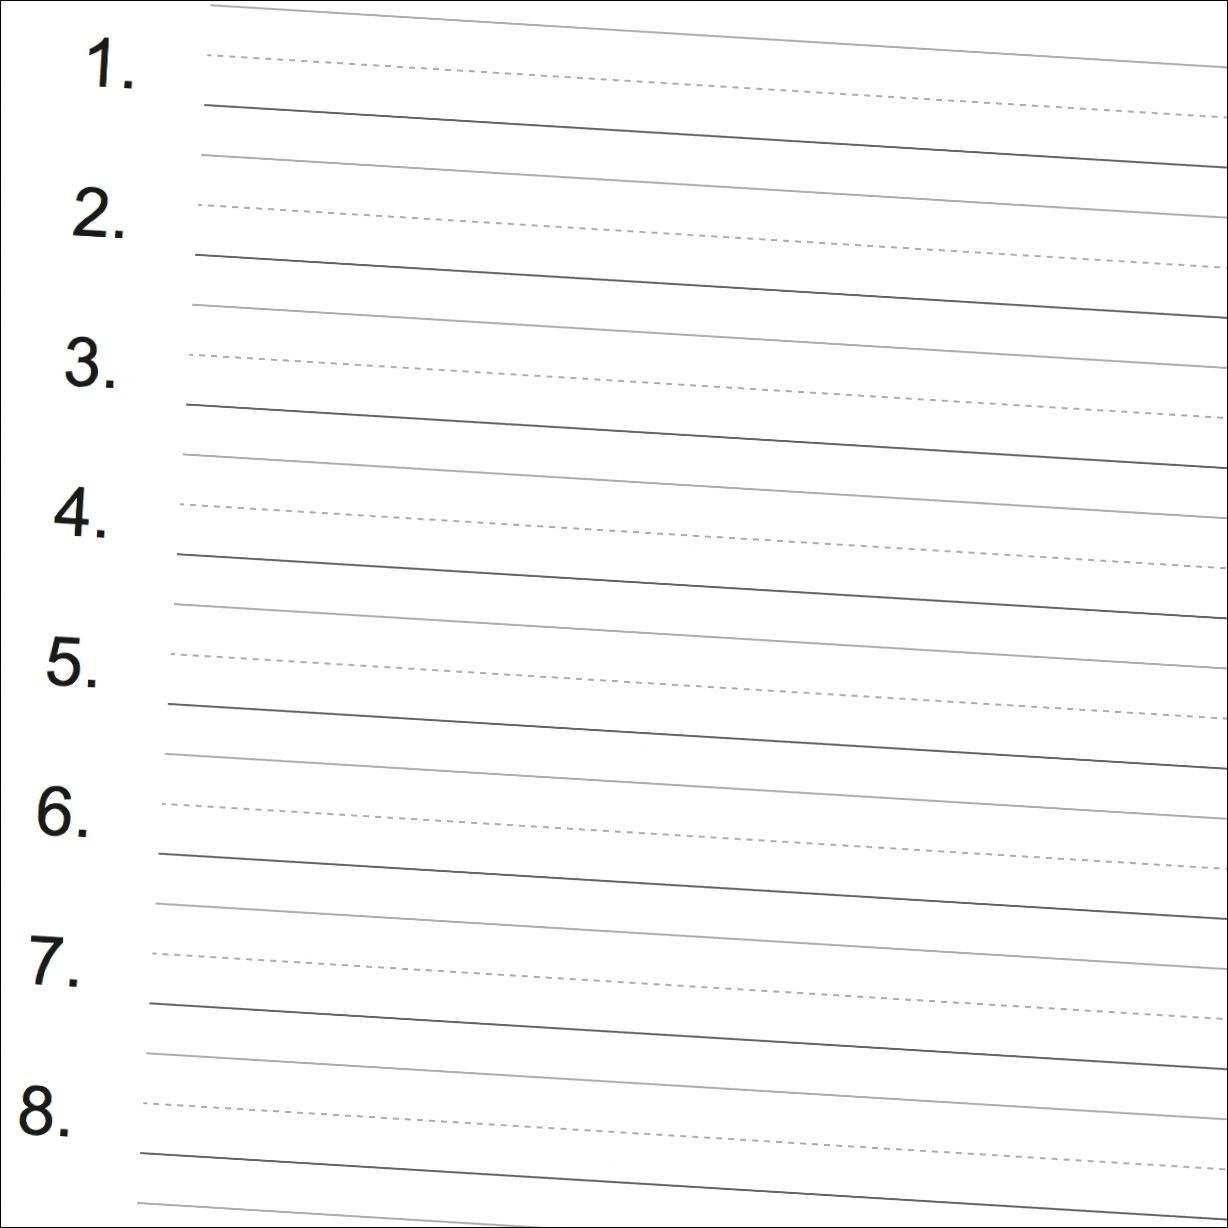 Numbered Printable Handwriting Paper Great For Spelling Tests - Free Printable Handwriting Paper